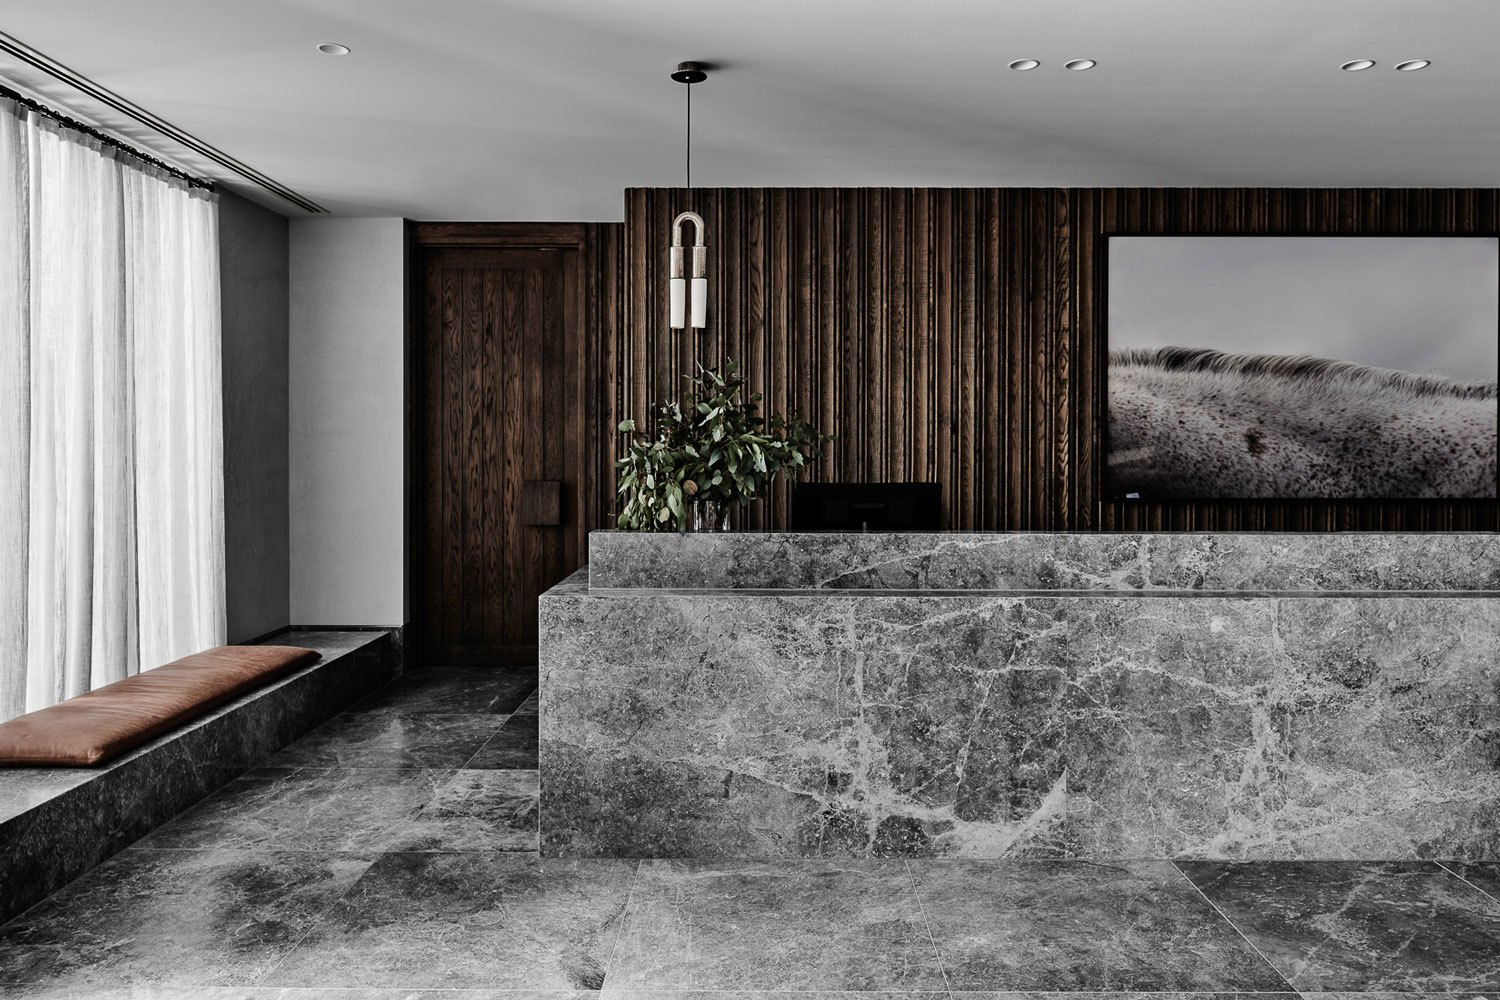 Mitchelton Winery Hotel    | Images by    Hecker Guthrie   , Photography by    Tom Blachford